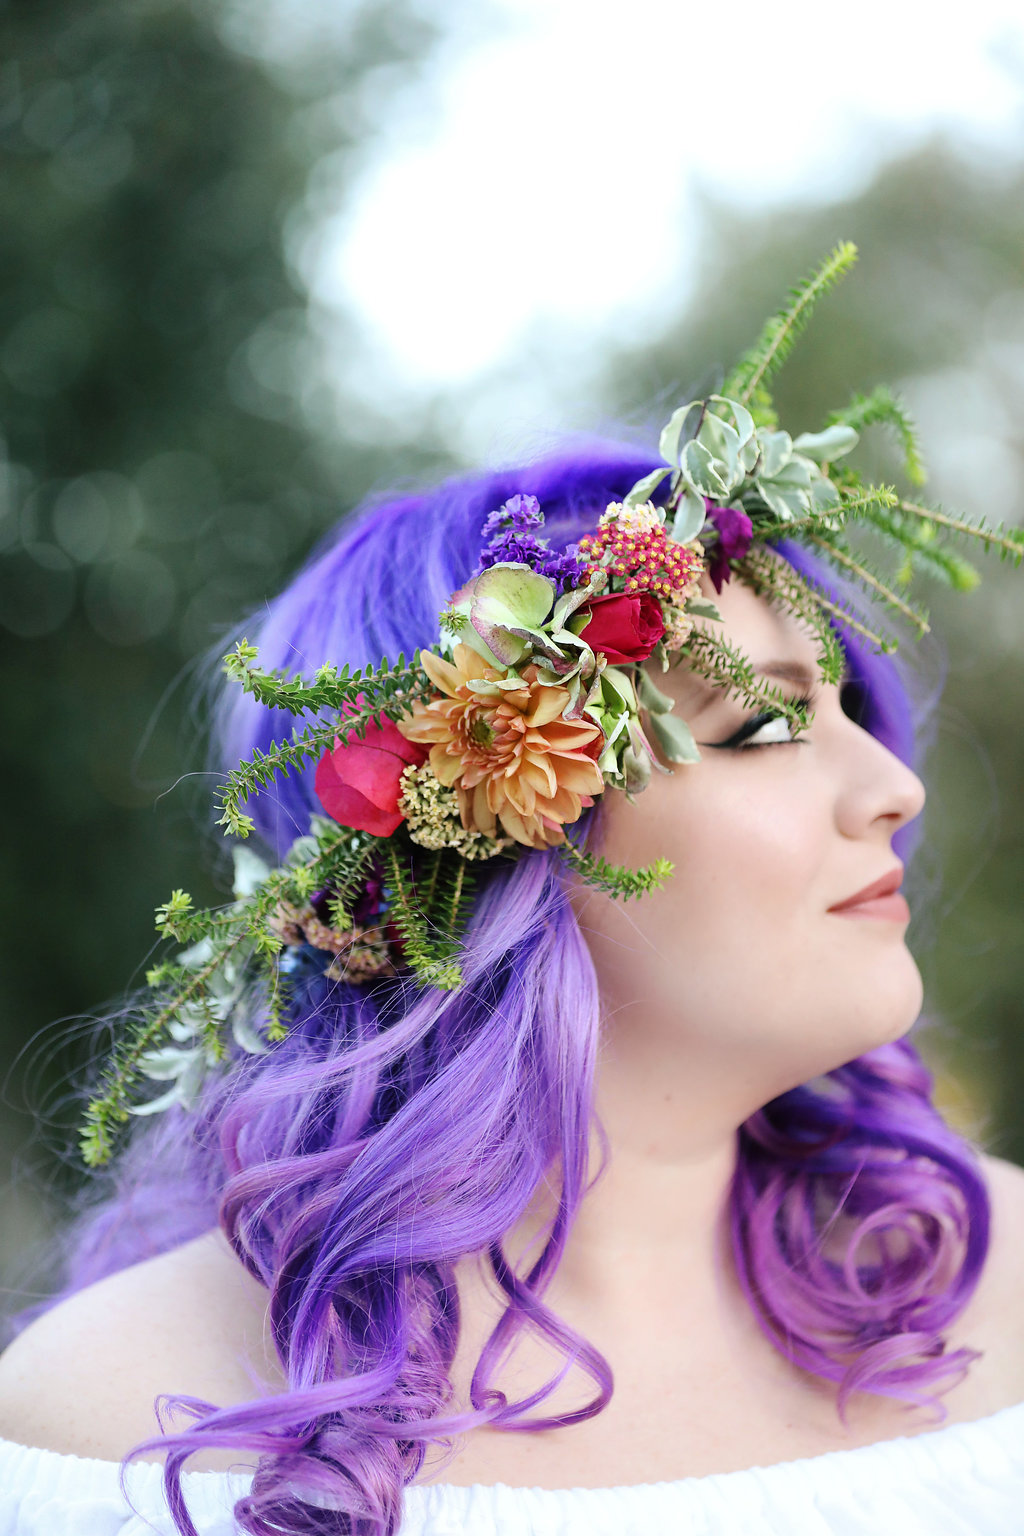 The ultra violet hair on this beautiful bride was framed perfectly with the bohemian floral crown she wore.